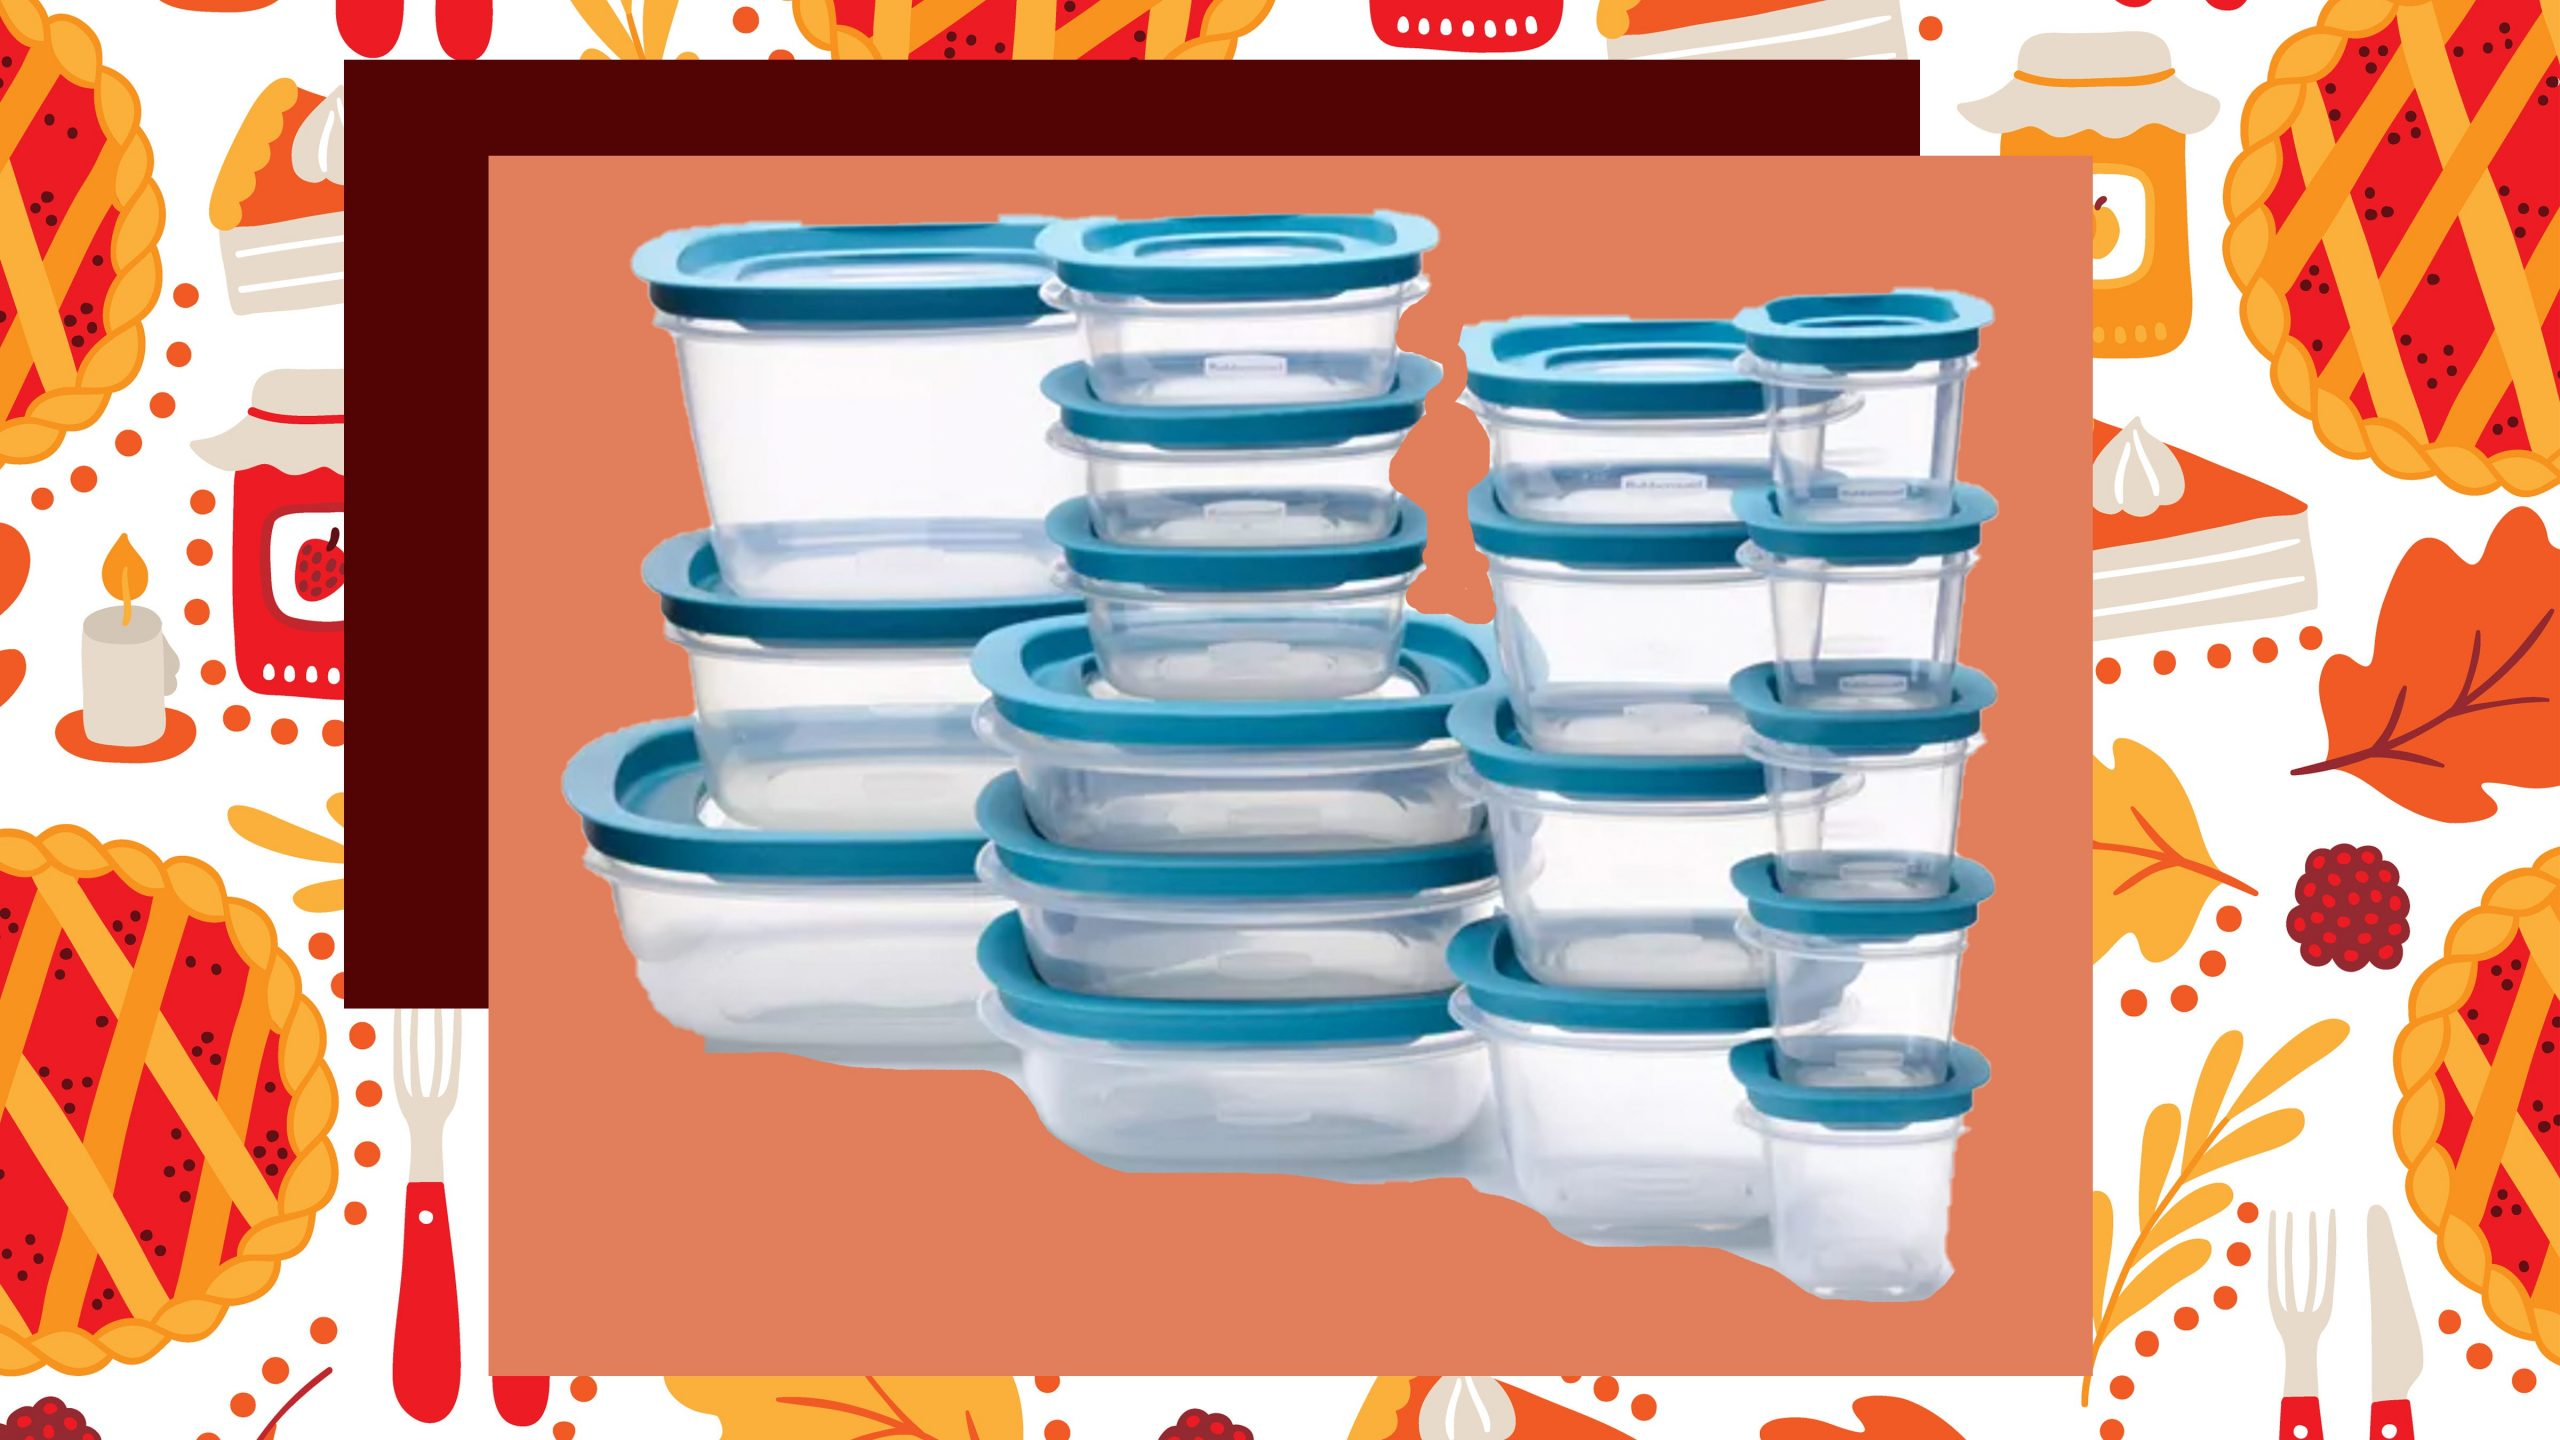 This 36-piece Rubbermaid set is less than $20